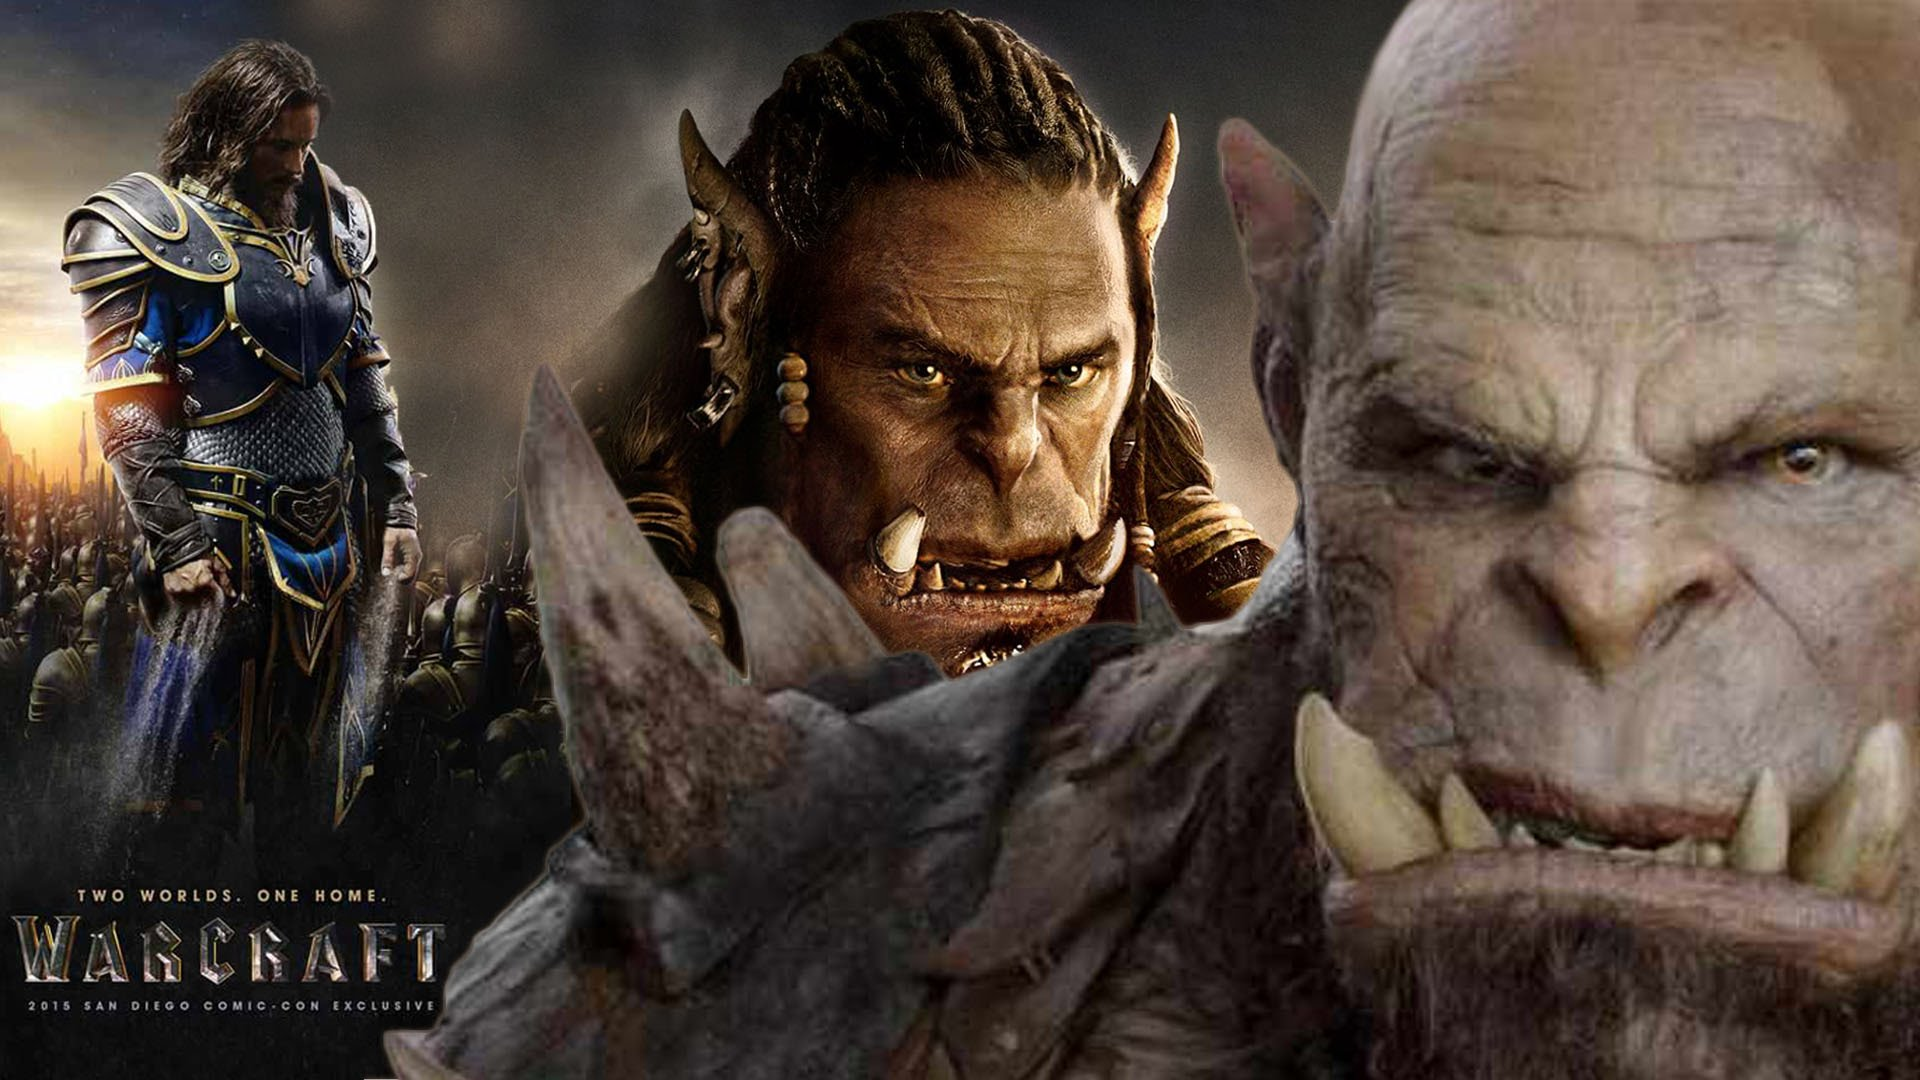 Warcraft Film 2016 Hd Wallpapers Free Download